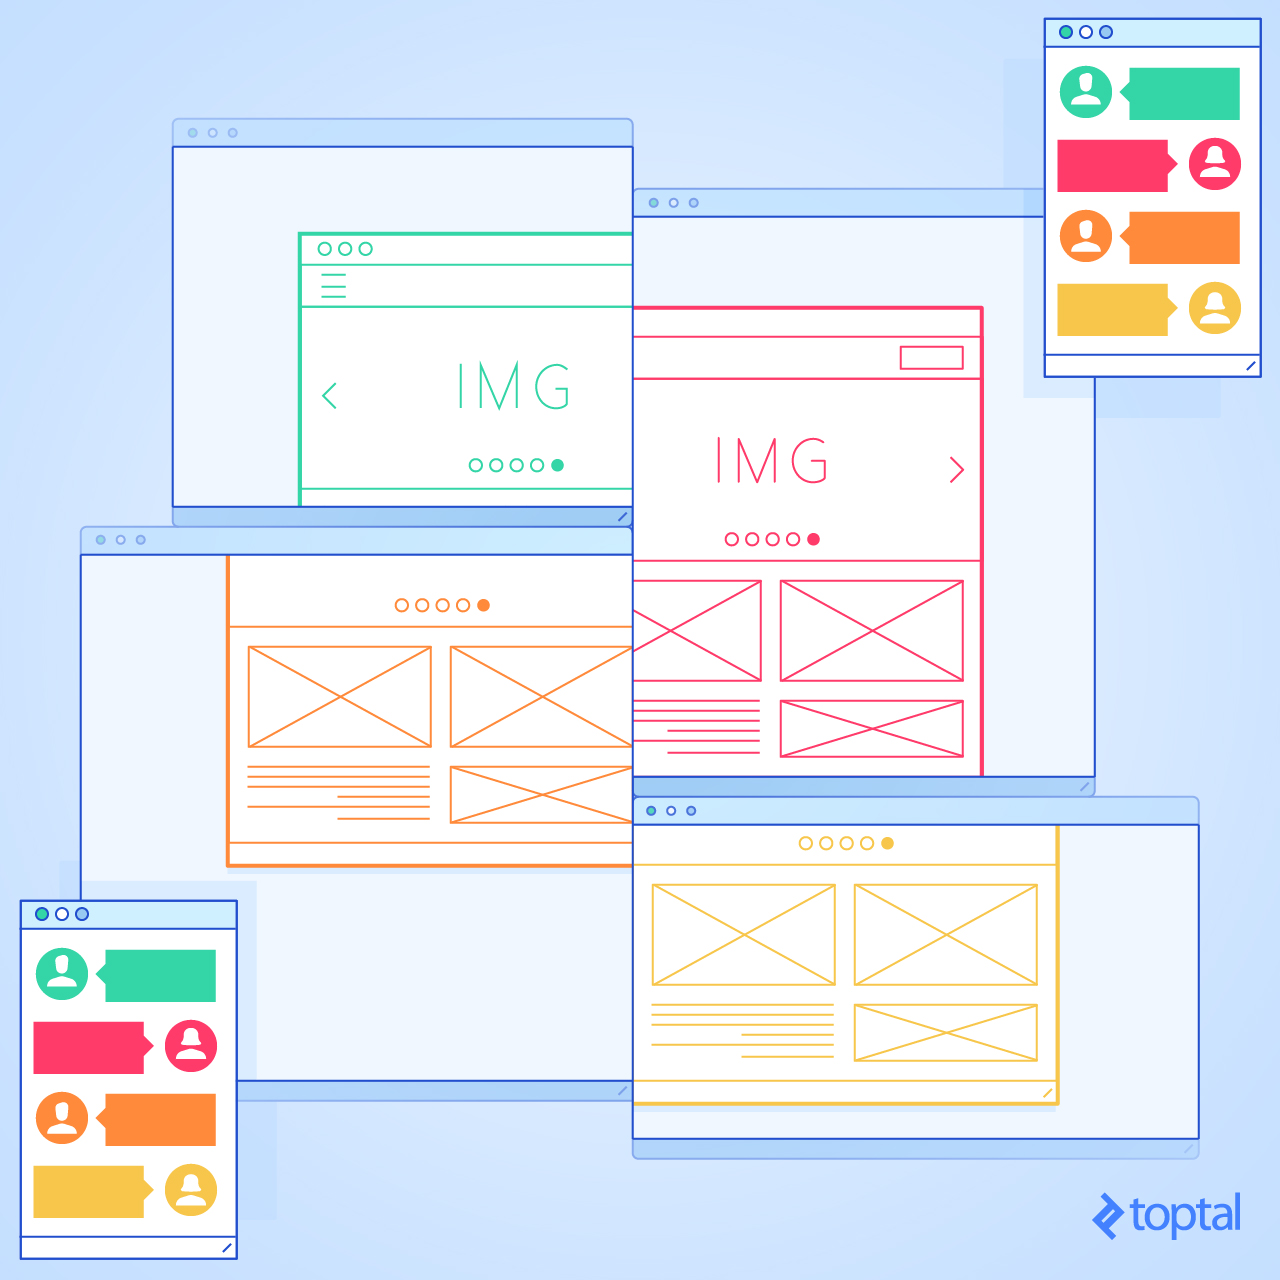 Image of a wireframe collage